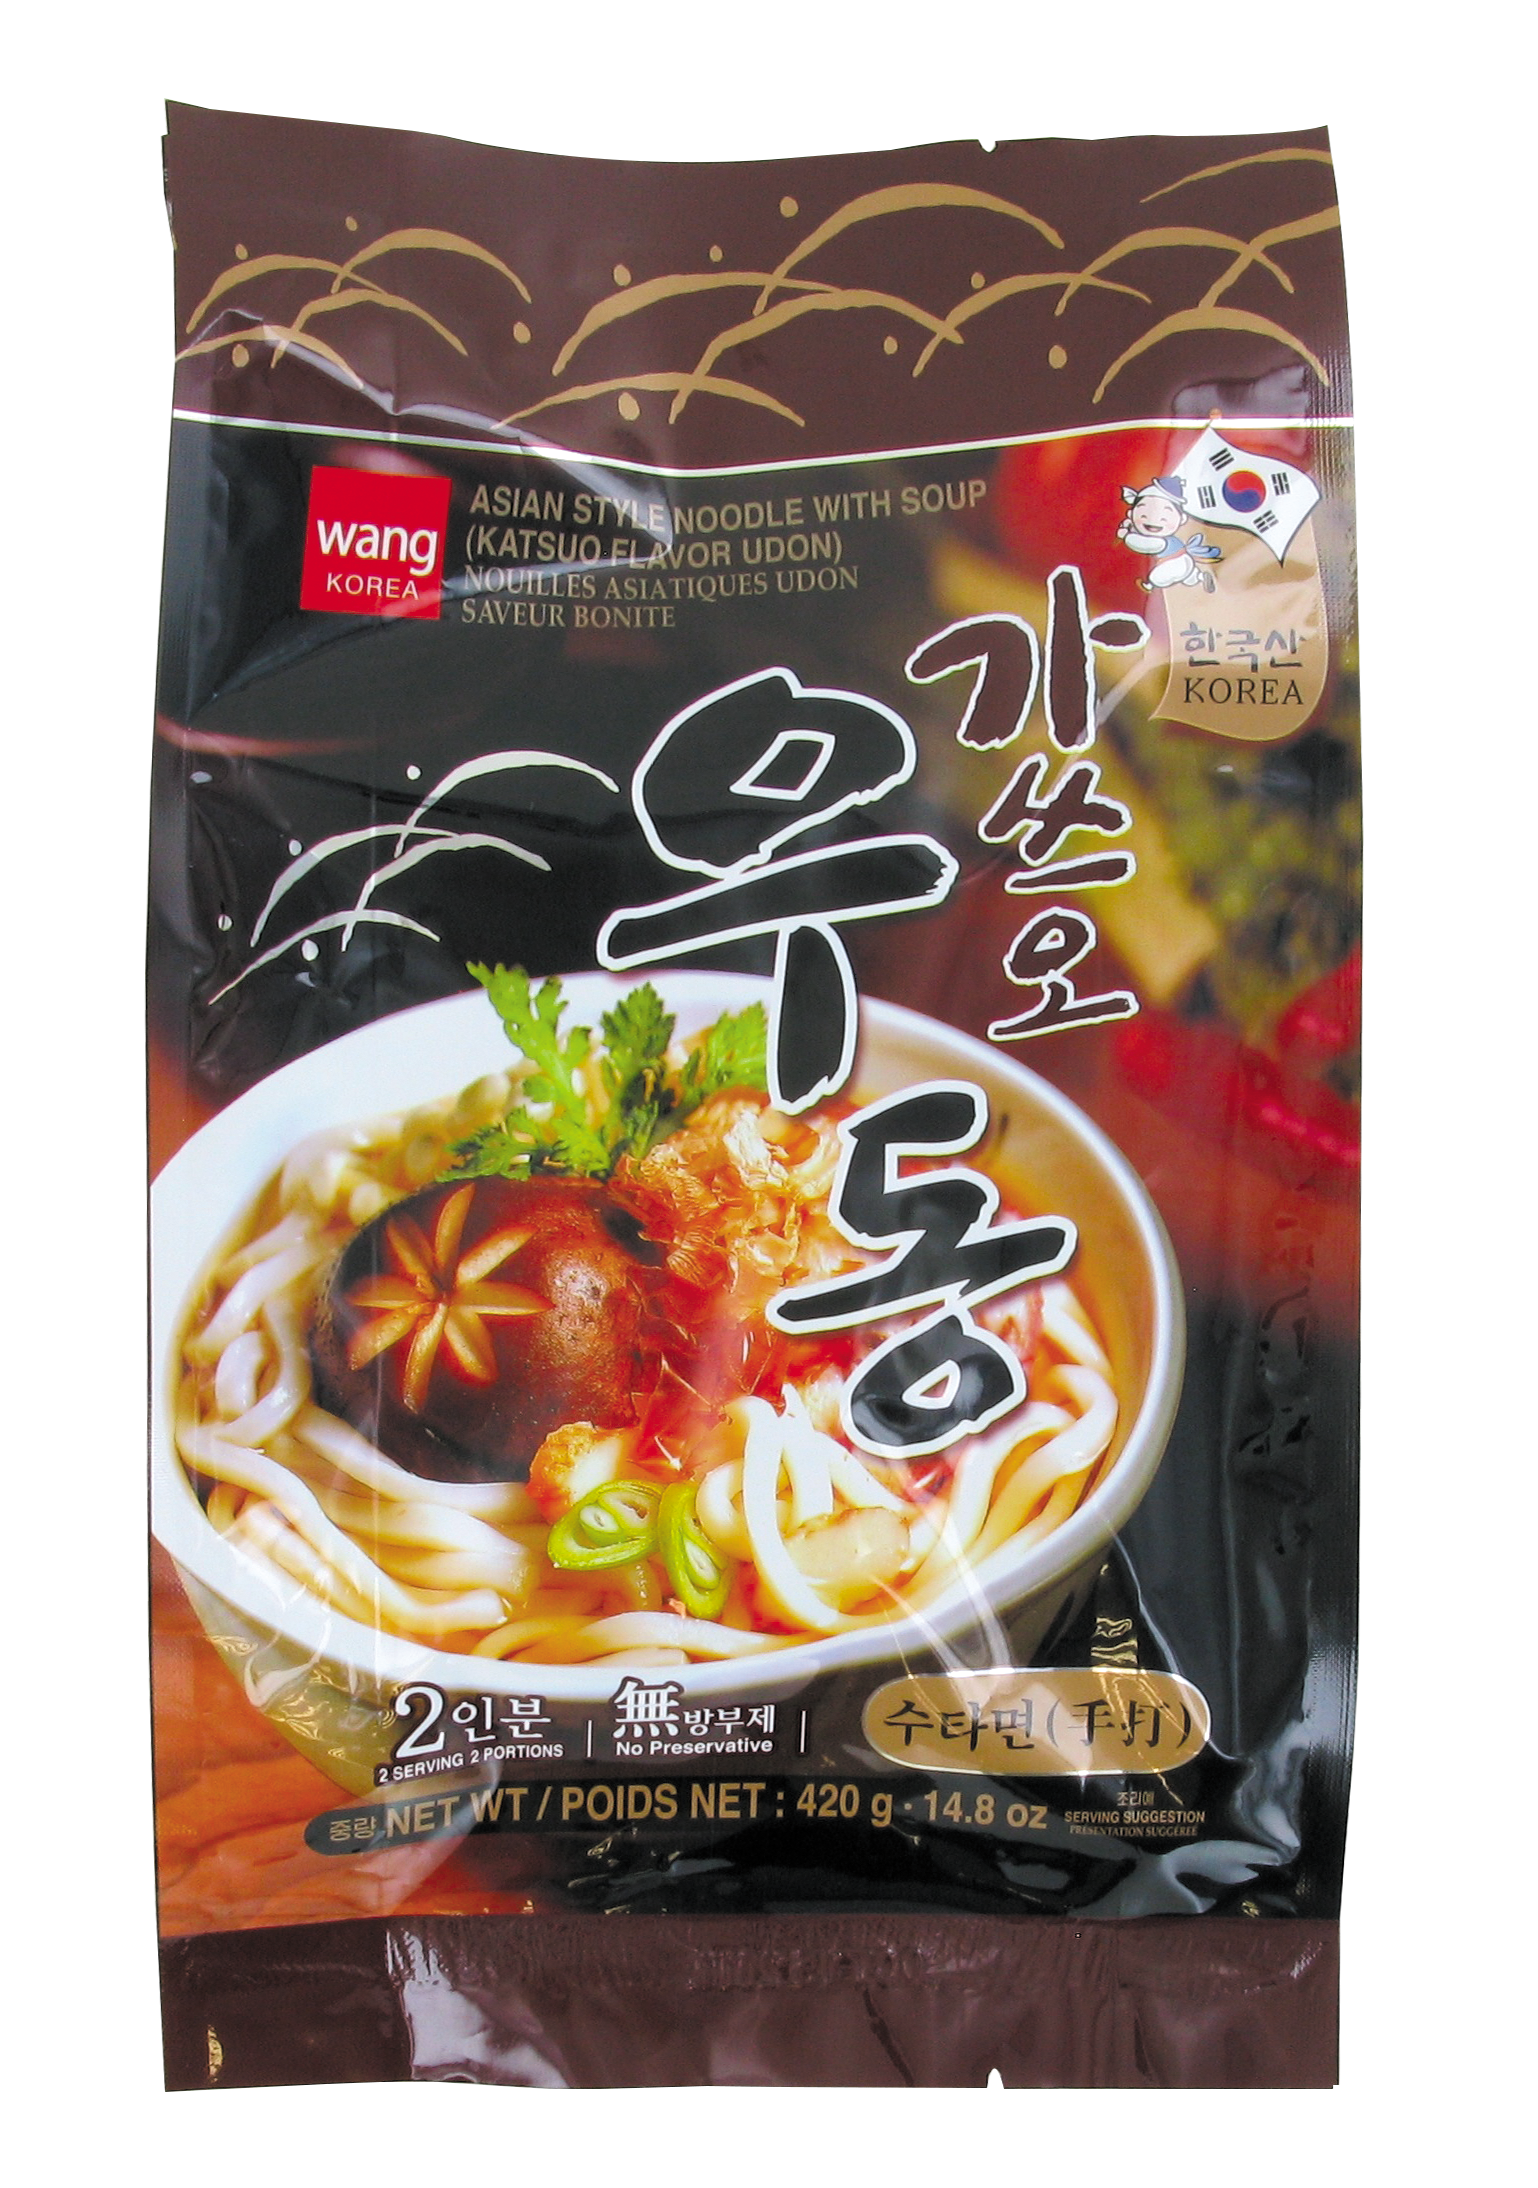 Udon saveur bonite, Wang Korea (2 x 210 g)